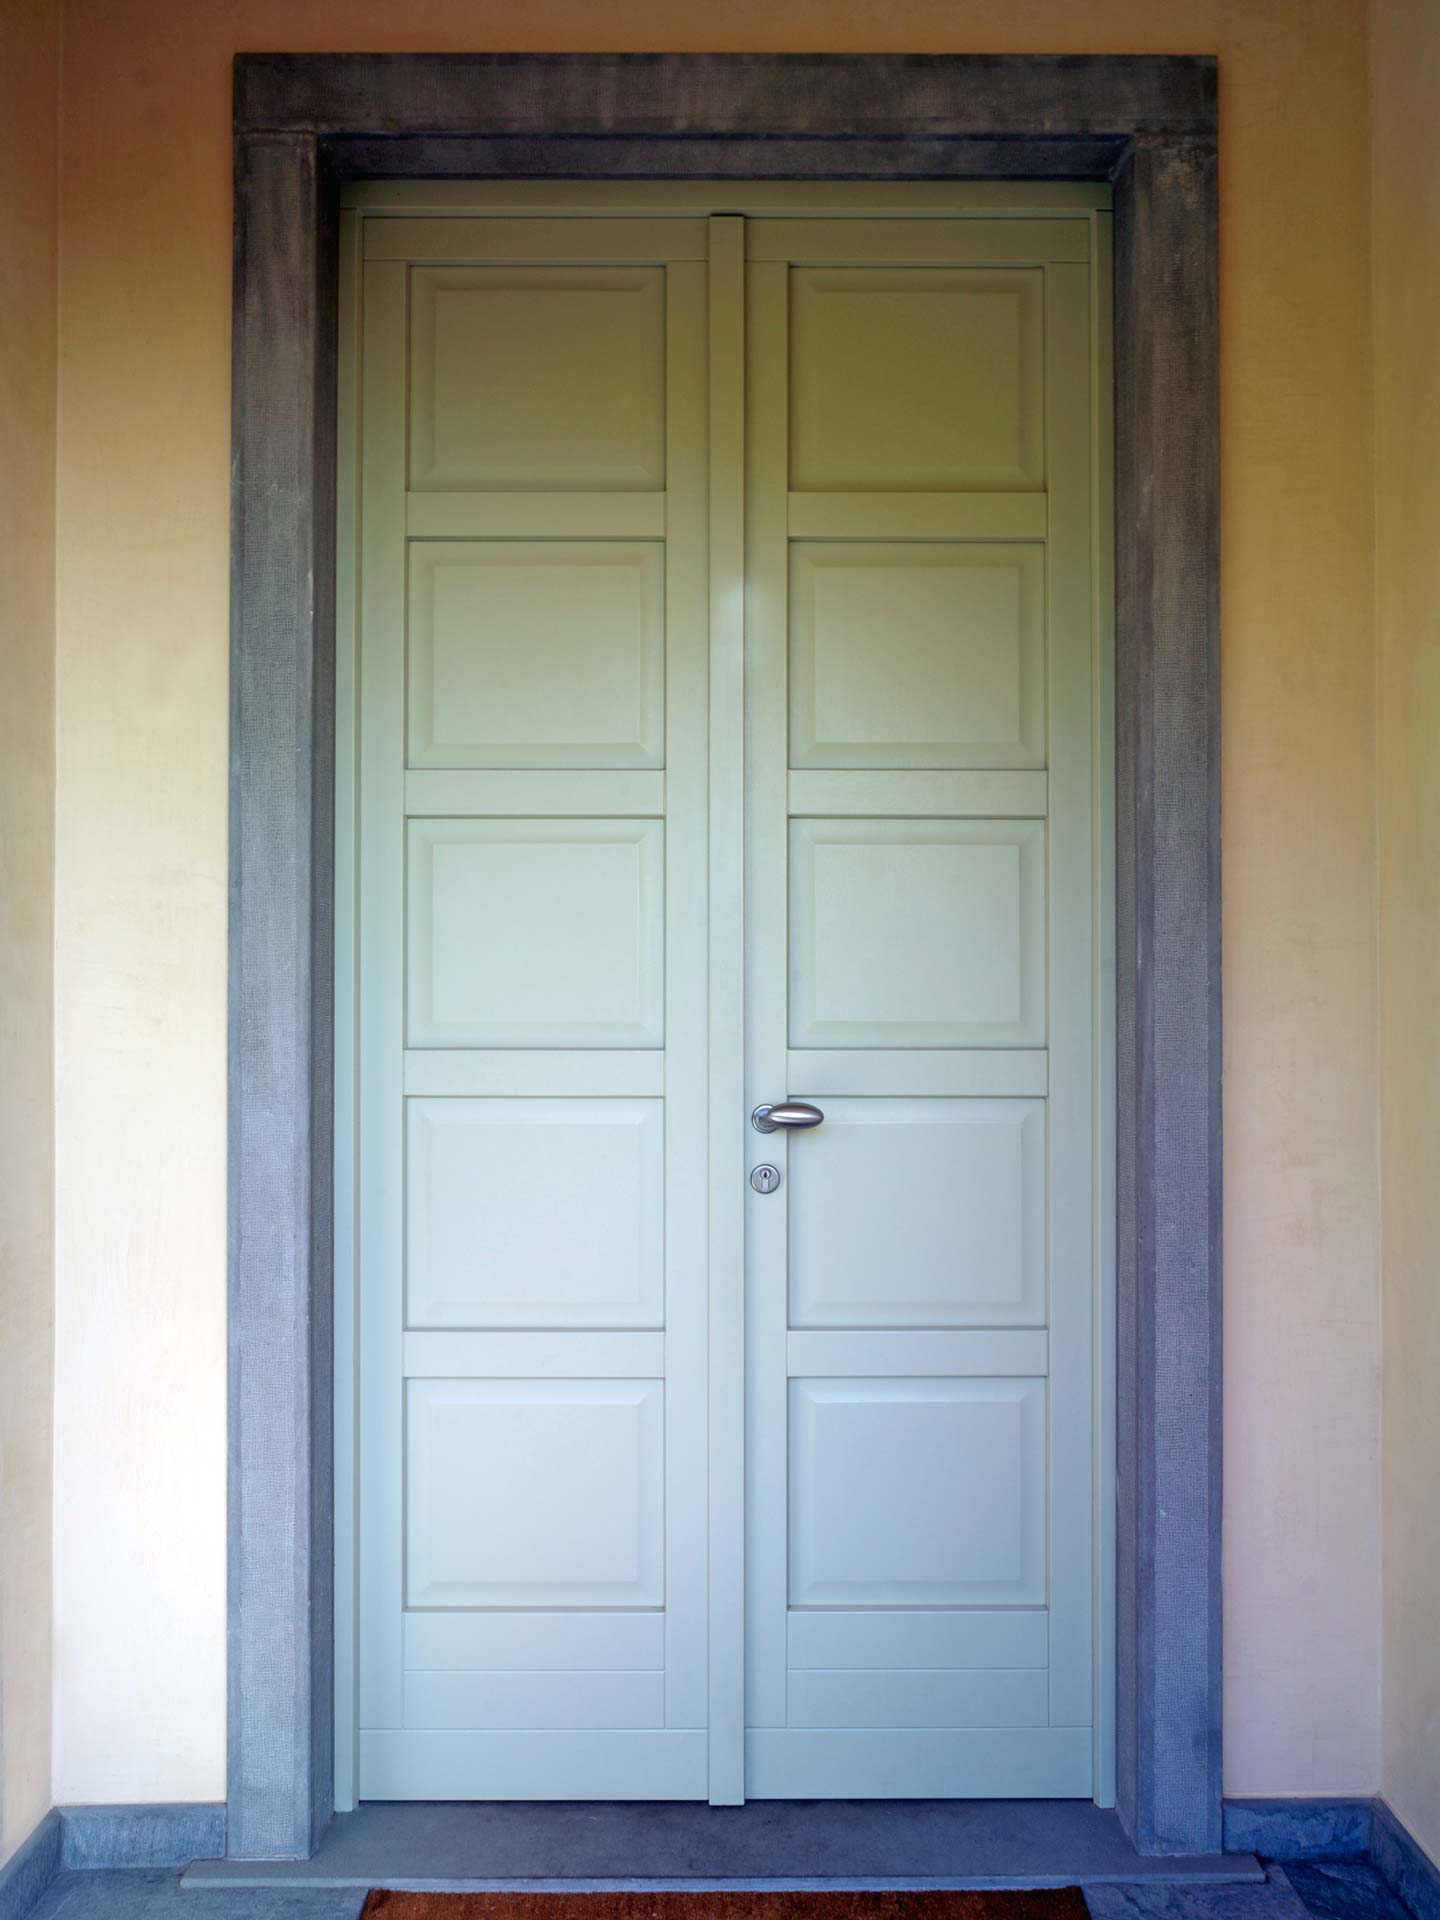 Entrance doors, image ten